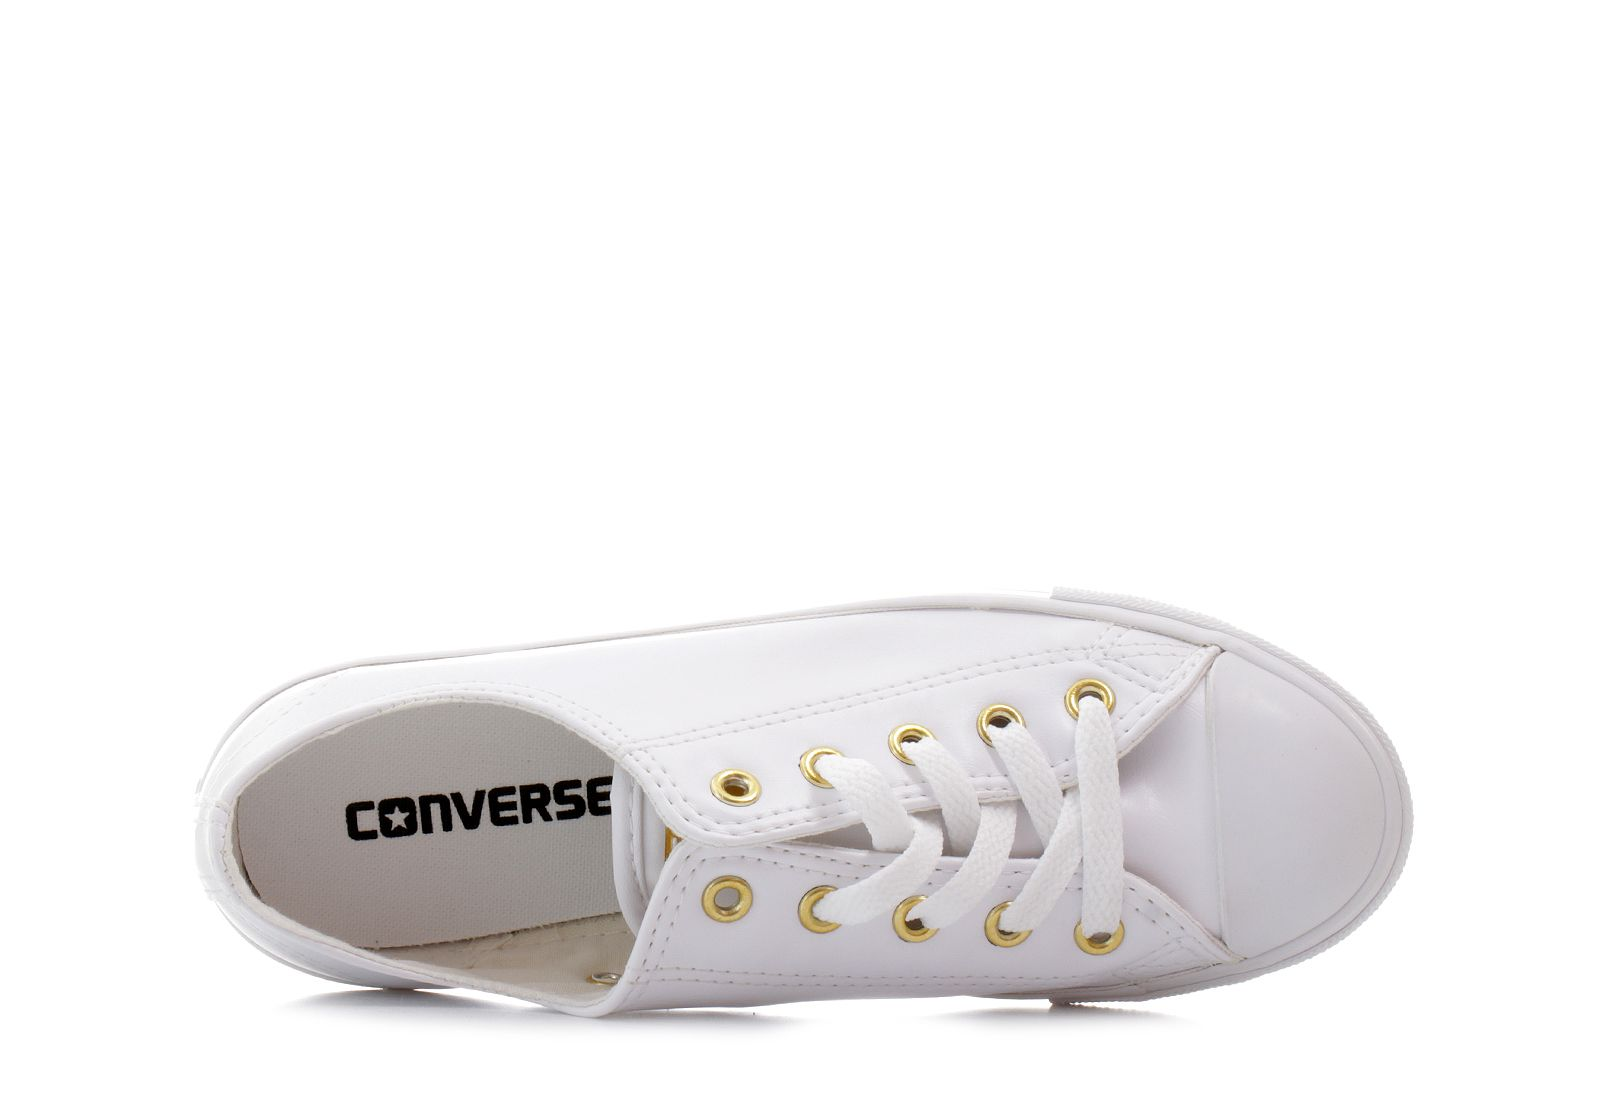 6f4d189c49 Converse Tenisky - Chuck Taylor All Star Dainty Leather - 555837C ...